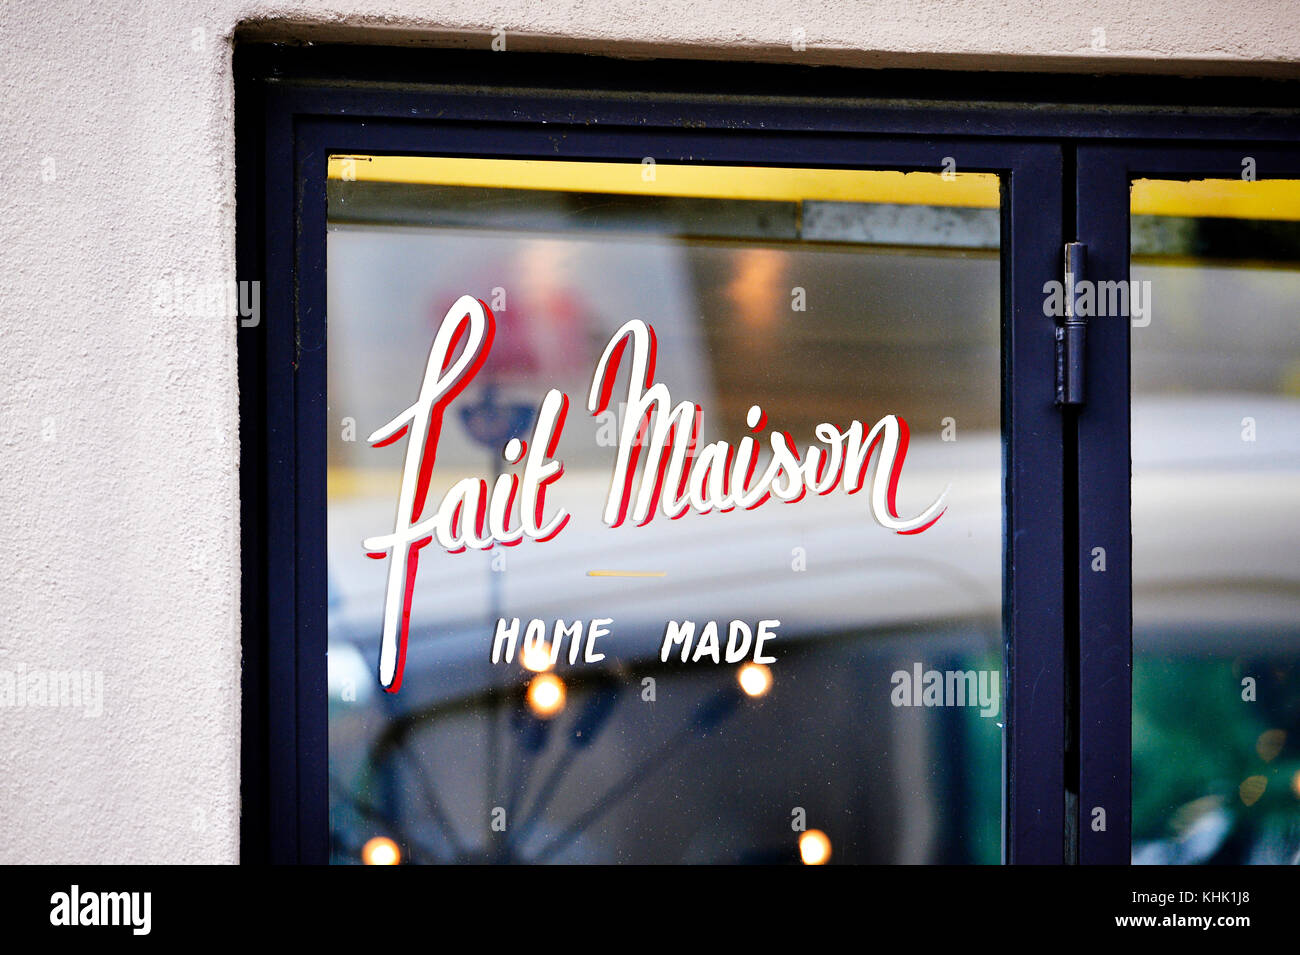 Paris Menu Letters High Resolution Stock Photography And Images Alamy